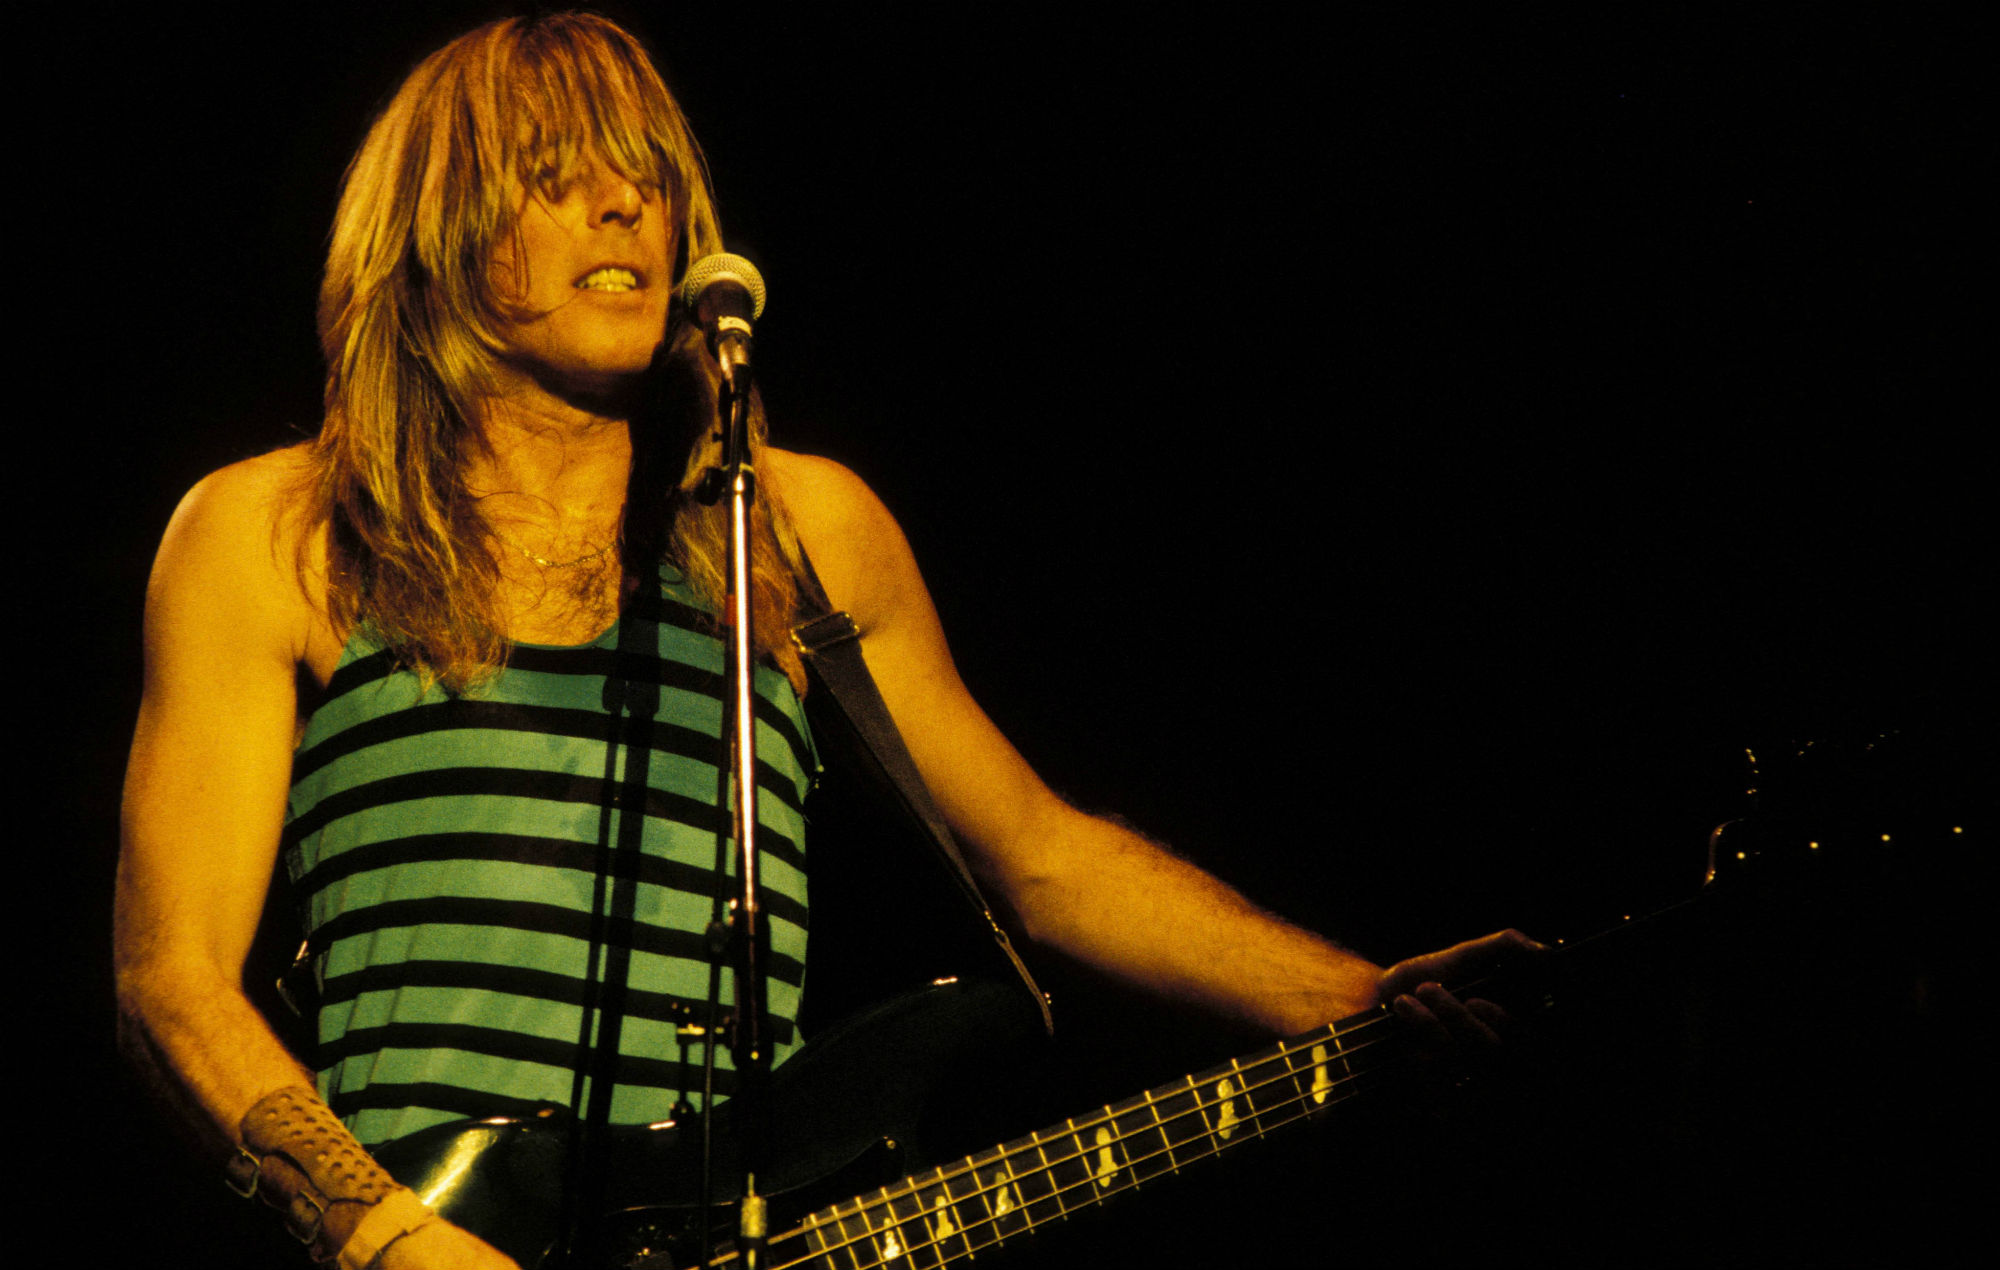 Bassist Cliff Williams might be re-joining AC/DC for their rumoured new album